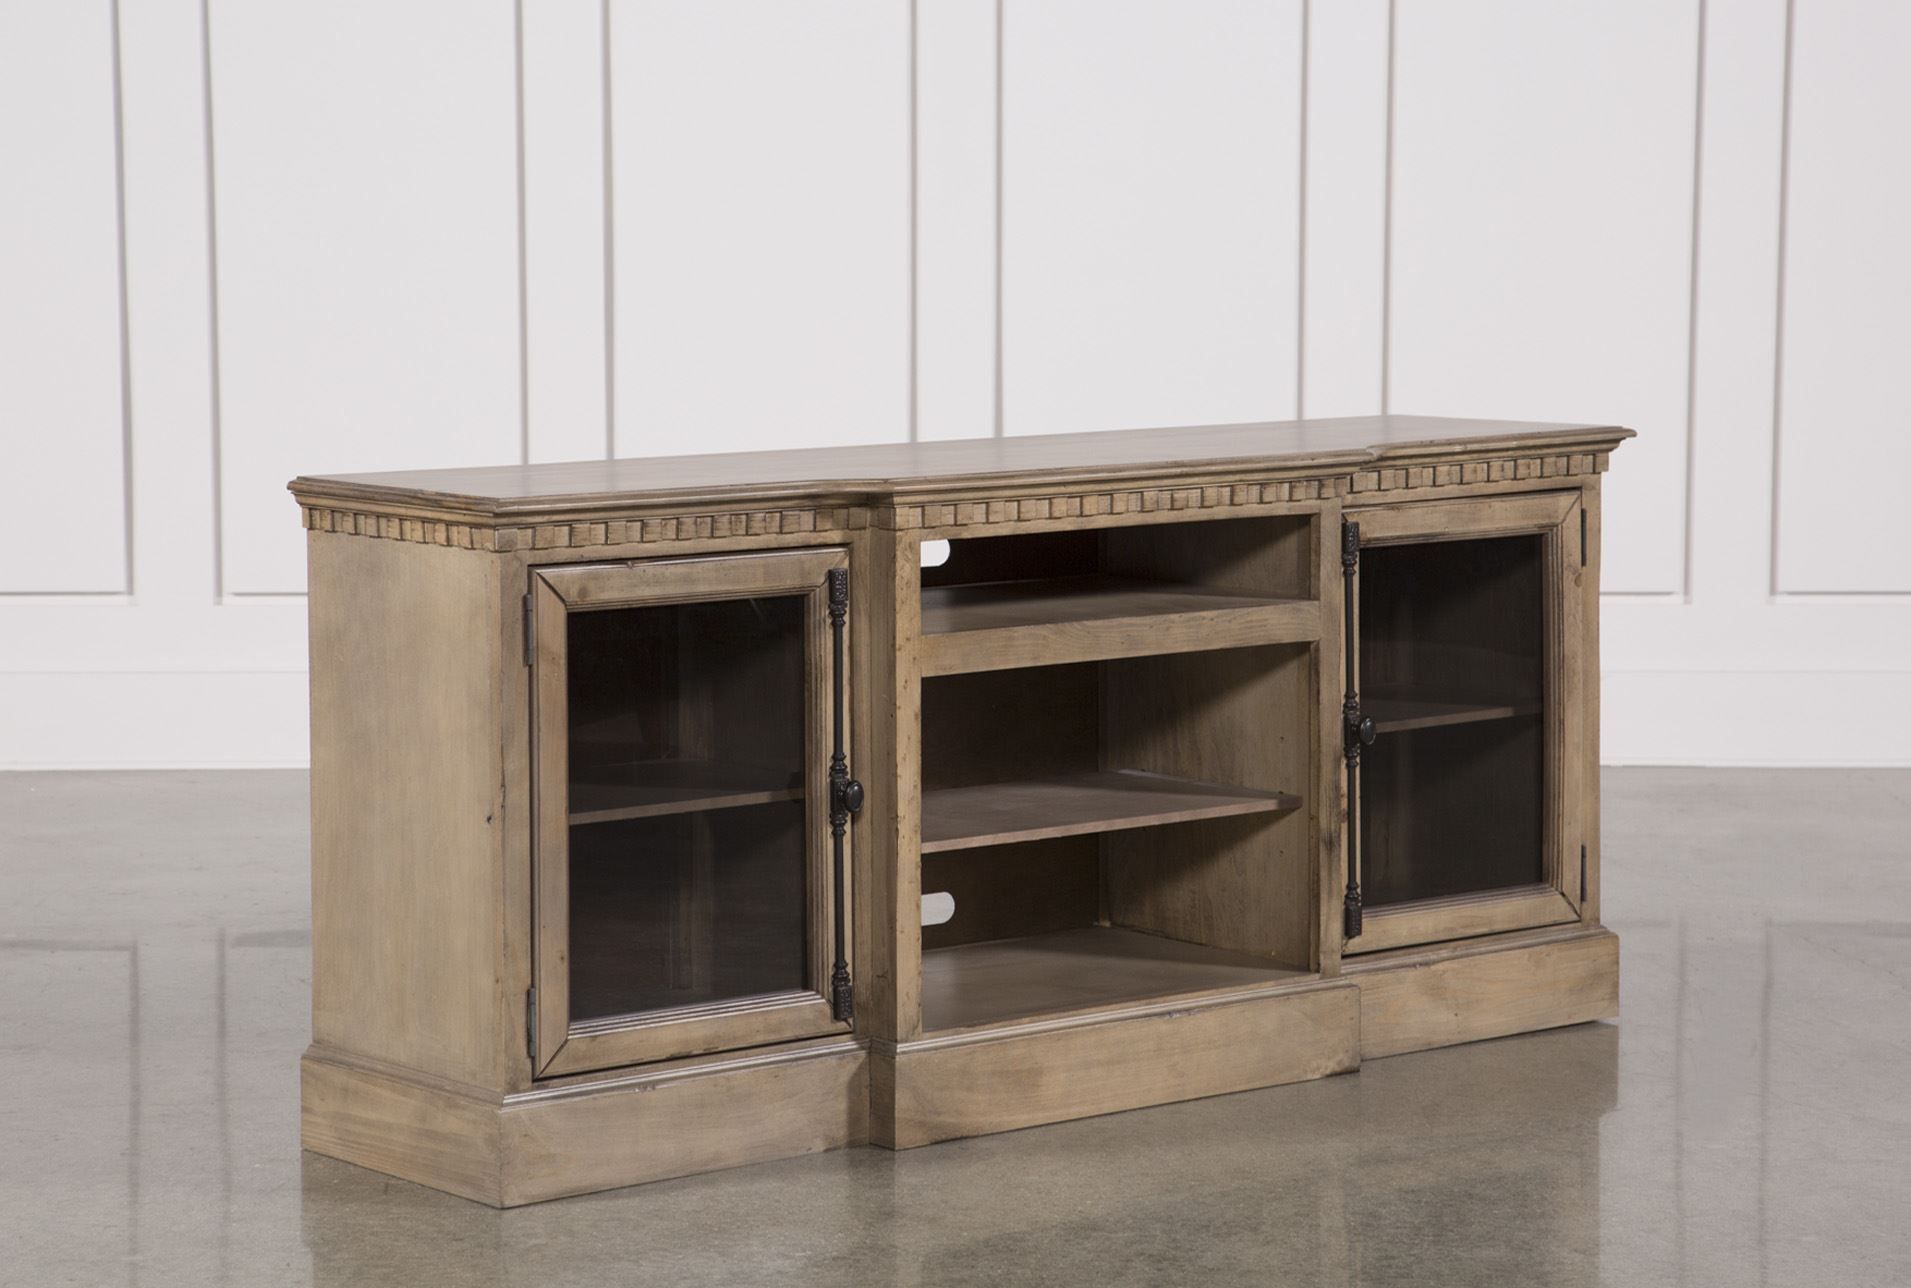 Arabella 74 Inch Tv Stand With Ducar 74 Inch Tv Stands (View 2 of 30)